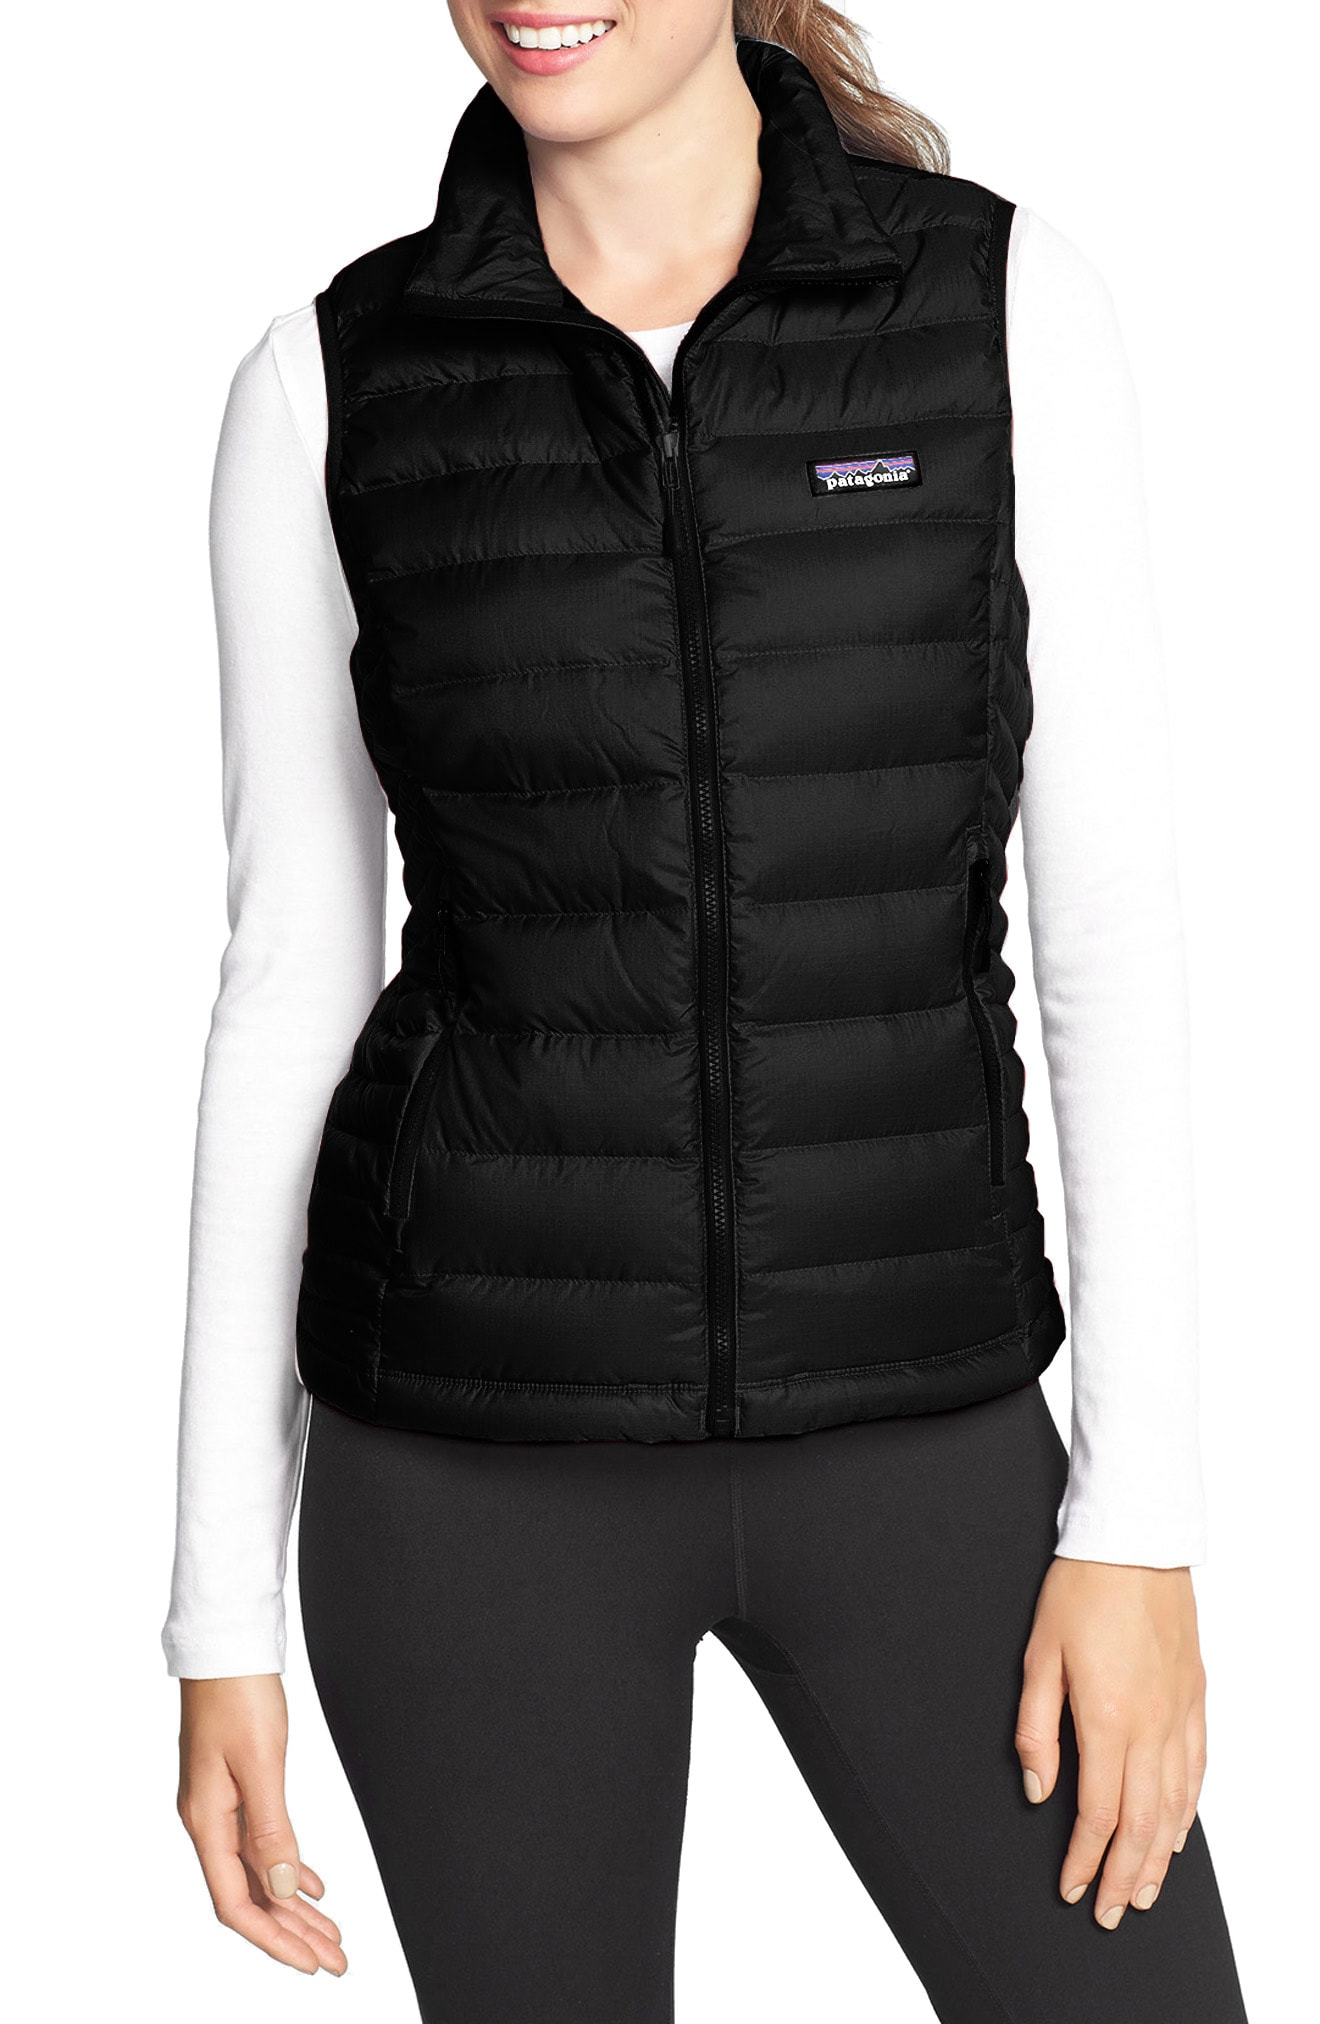 Black Women's Vests